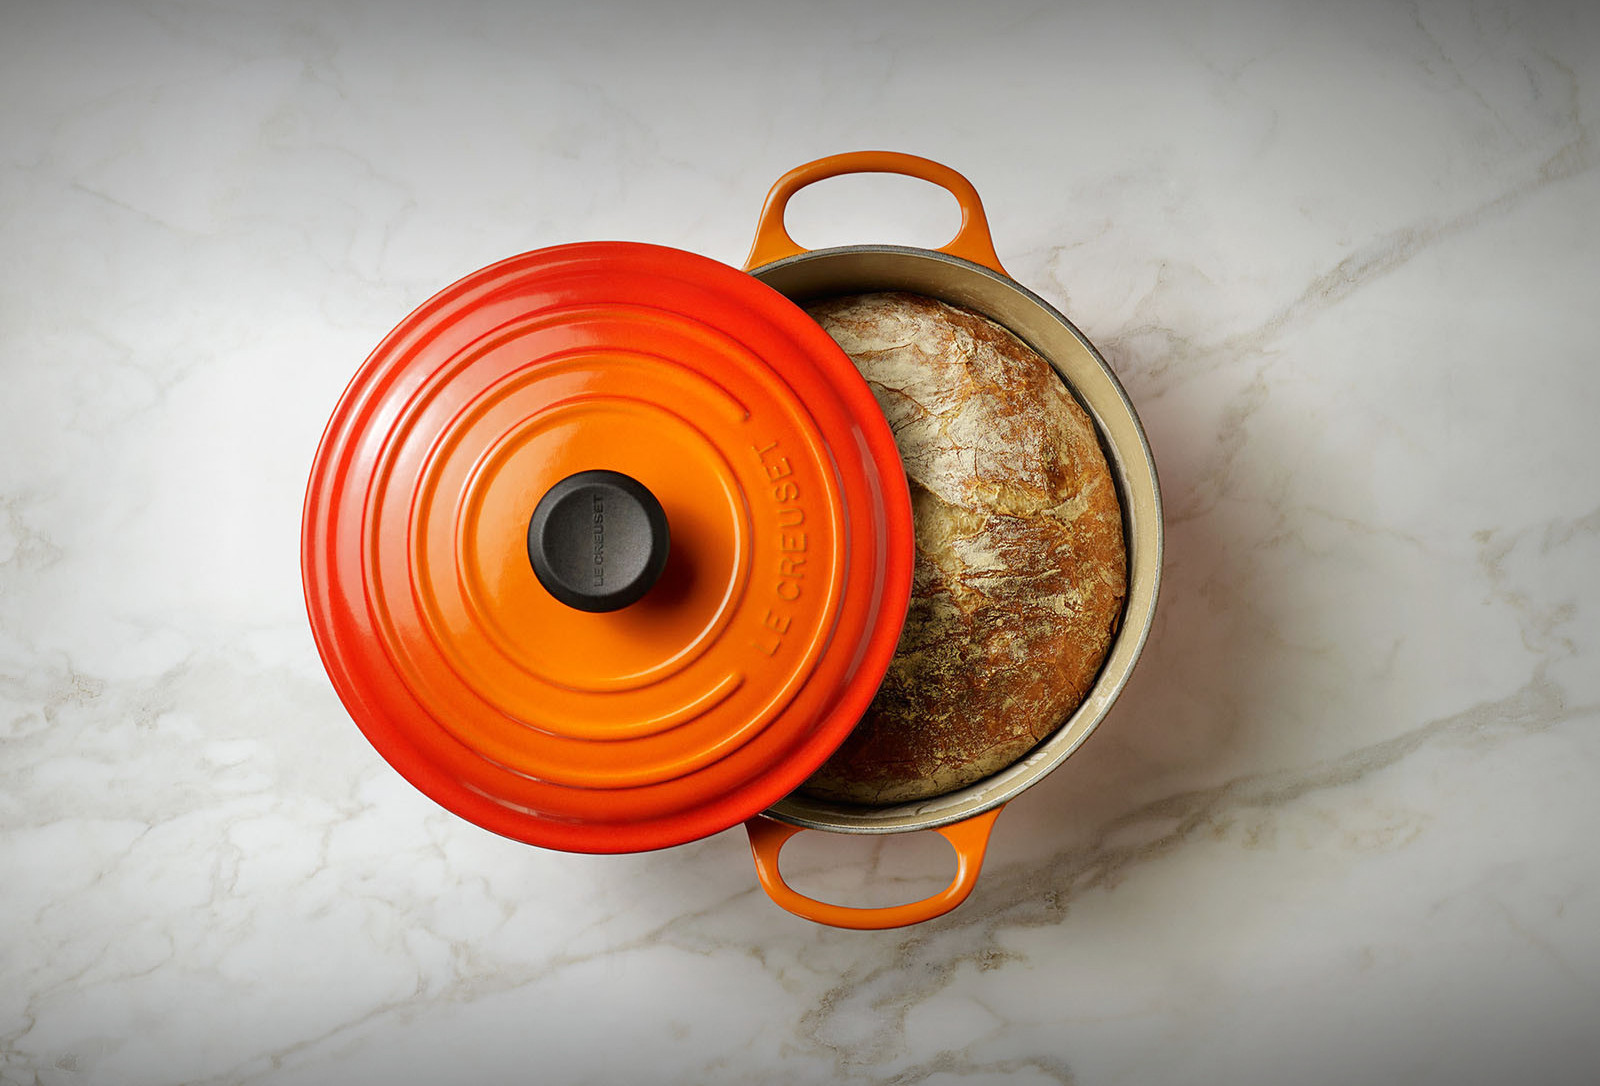 Le Creuset Signature Vs Clic What Is The Difference